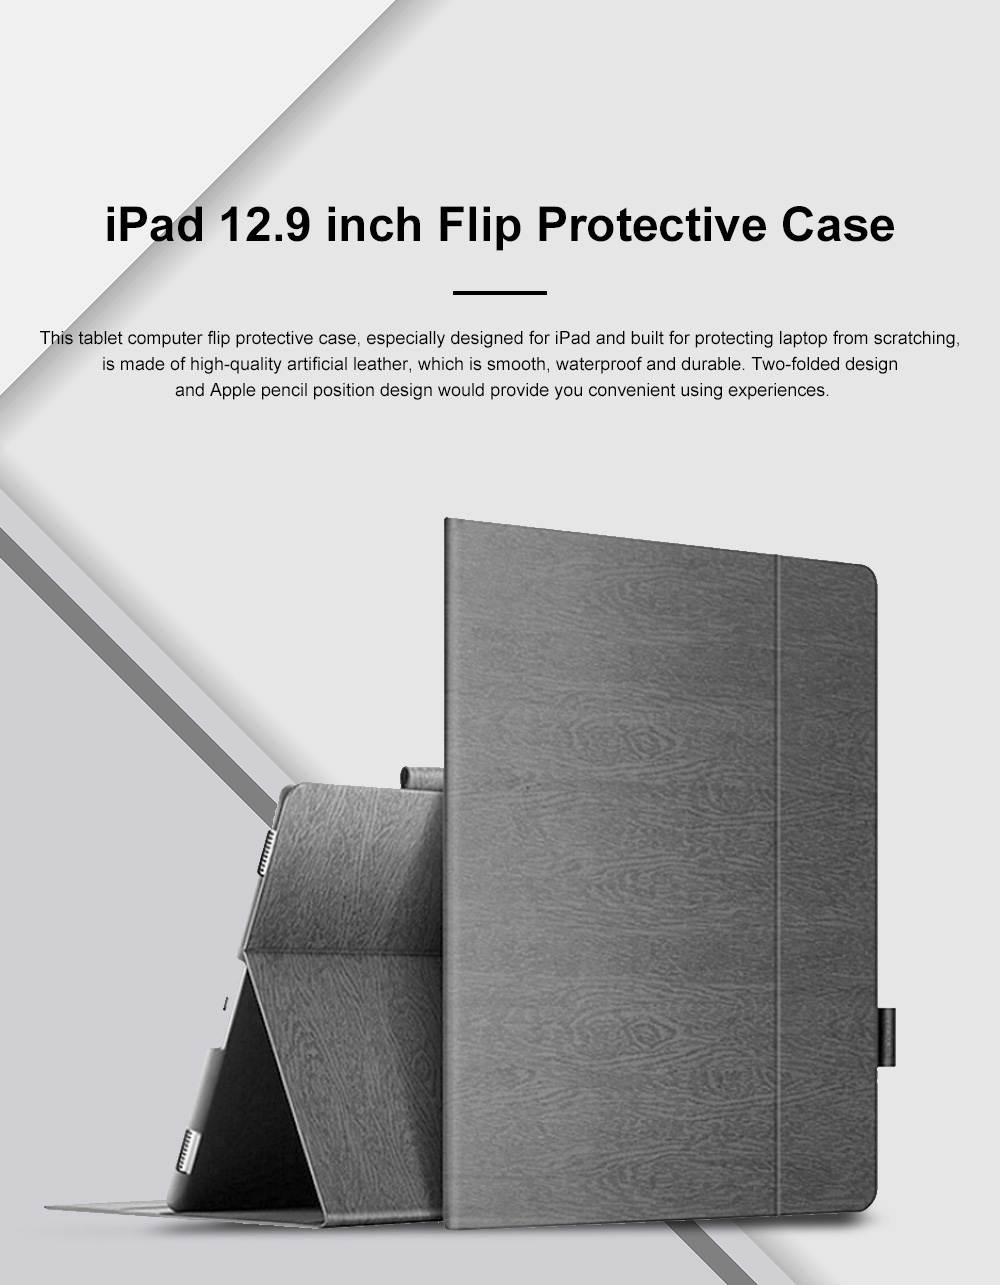 Simple Two-folded iPad Pro 12.9 9.7 inch Flip Protective Case, Smooth Artificial Leather iPad Computer Protective Sleeve Supporter 0